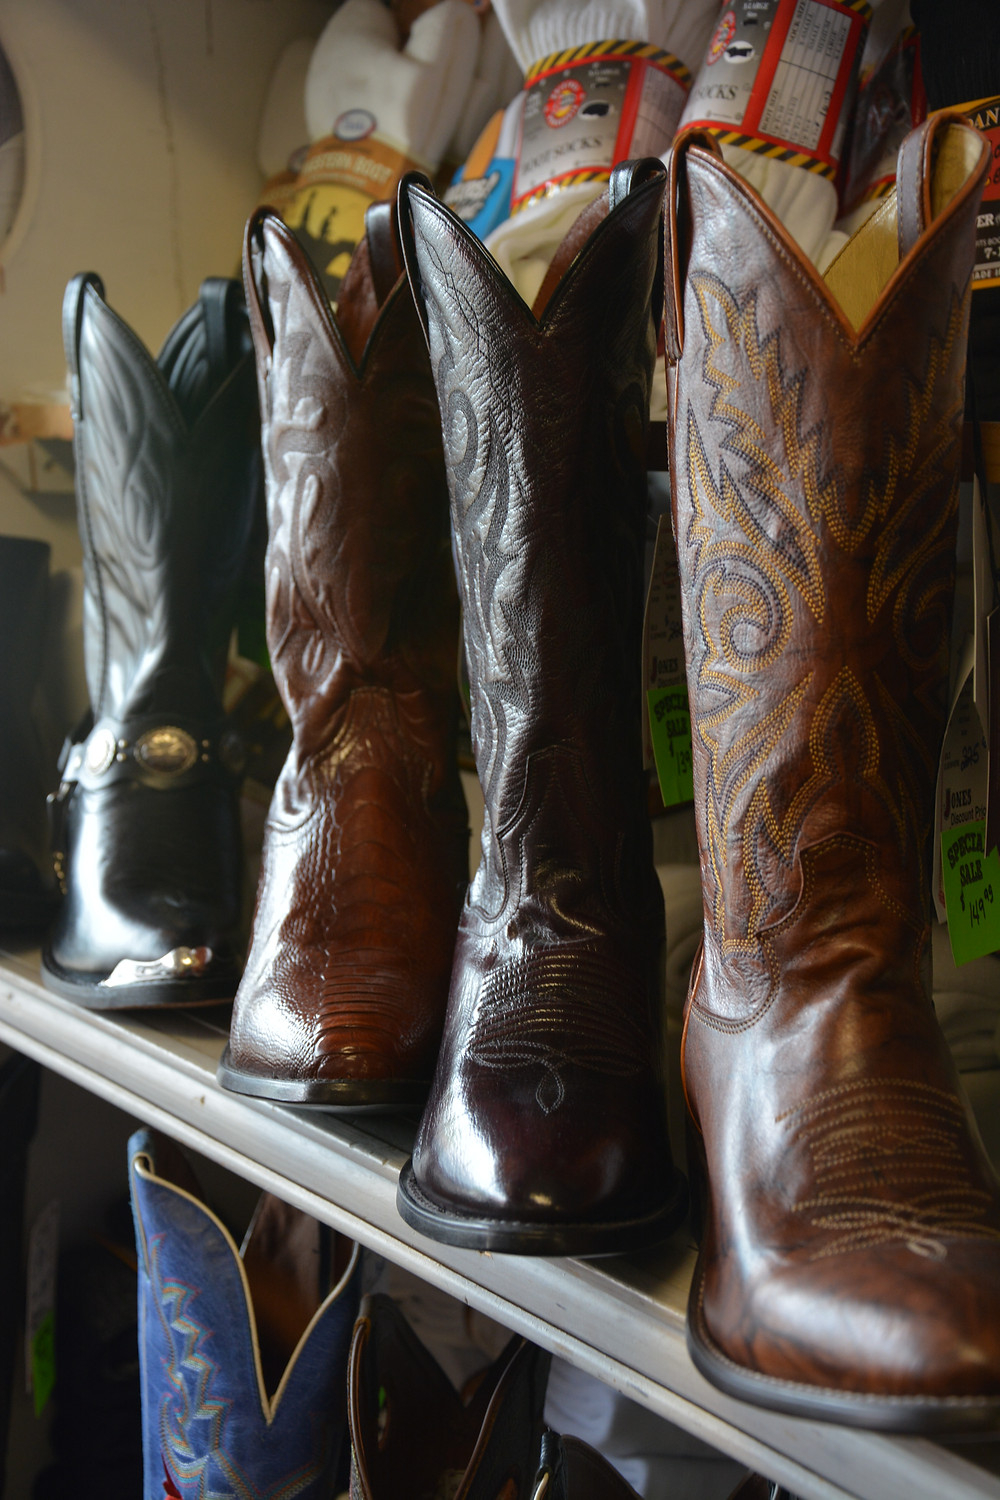 The finest of cowboy boots, no longer just made in the USA, but China and Mexico.